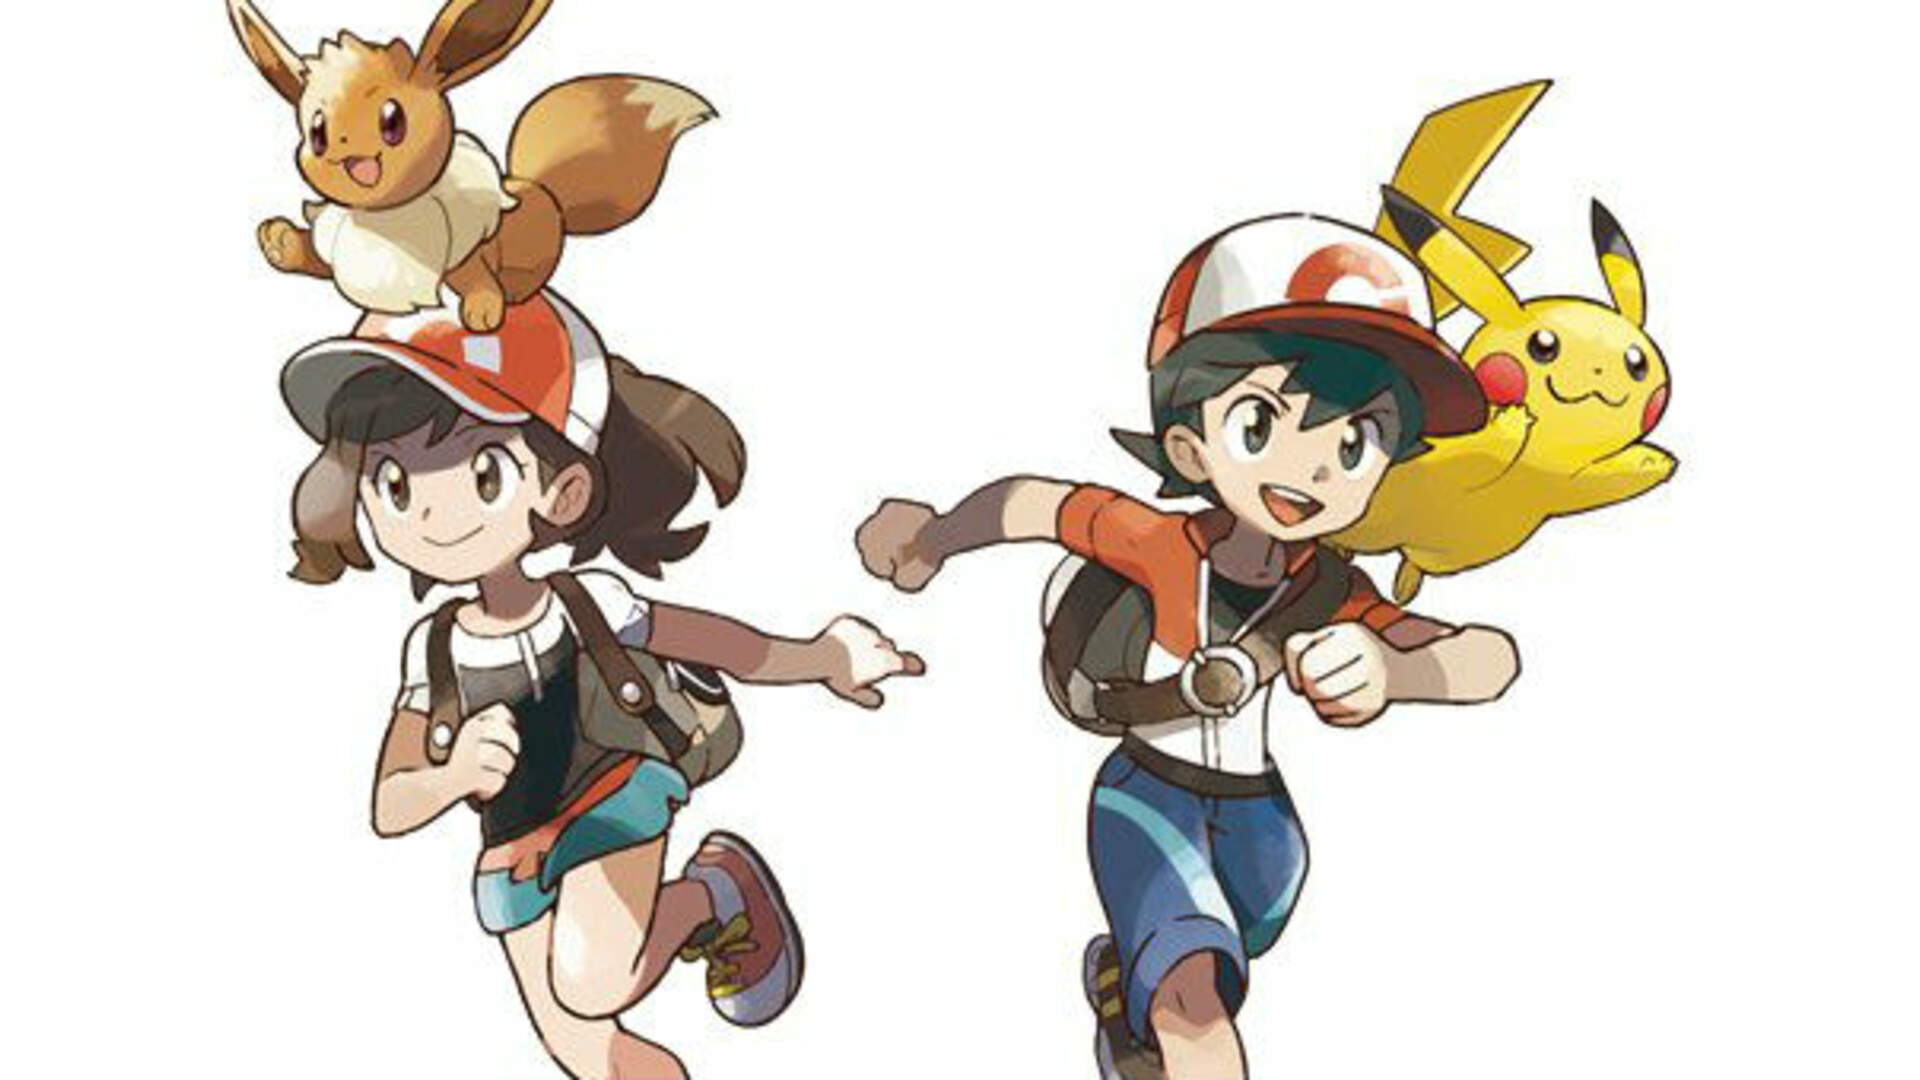 Pokemon Let's Go Online Functionality Requires Paid Nintendo Online Account